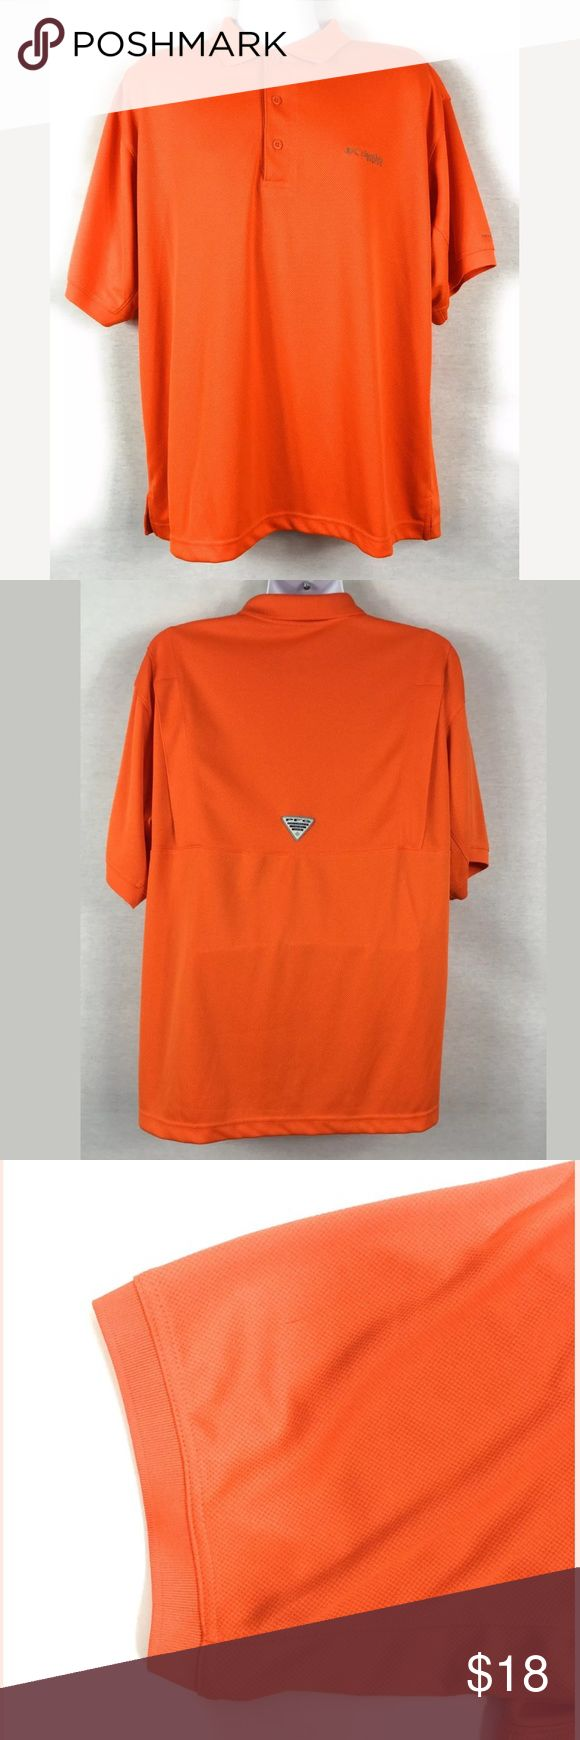 """Columbia Omni Shade PFG Men's Vented Back Large Columbia Omni Shade PFG (Performance Fishing Gear) Polo style Shirt. Men's Size Large in Bright Orange. Shirt is vented in the back. Good used condition with no rips or stains. Shirt is 100%Polyester and machine washable. Please see measurements and pictures for details.  Underarm to Underarm 25""""  Center Back Length 30"""" Columbia PFG Shirts Casual Button Down Shirts"""